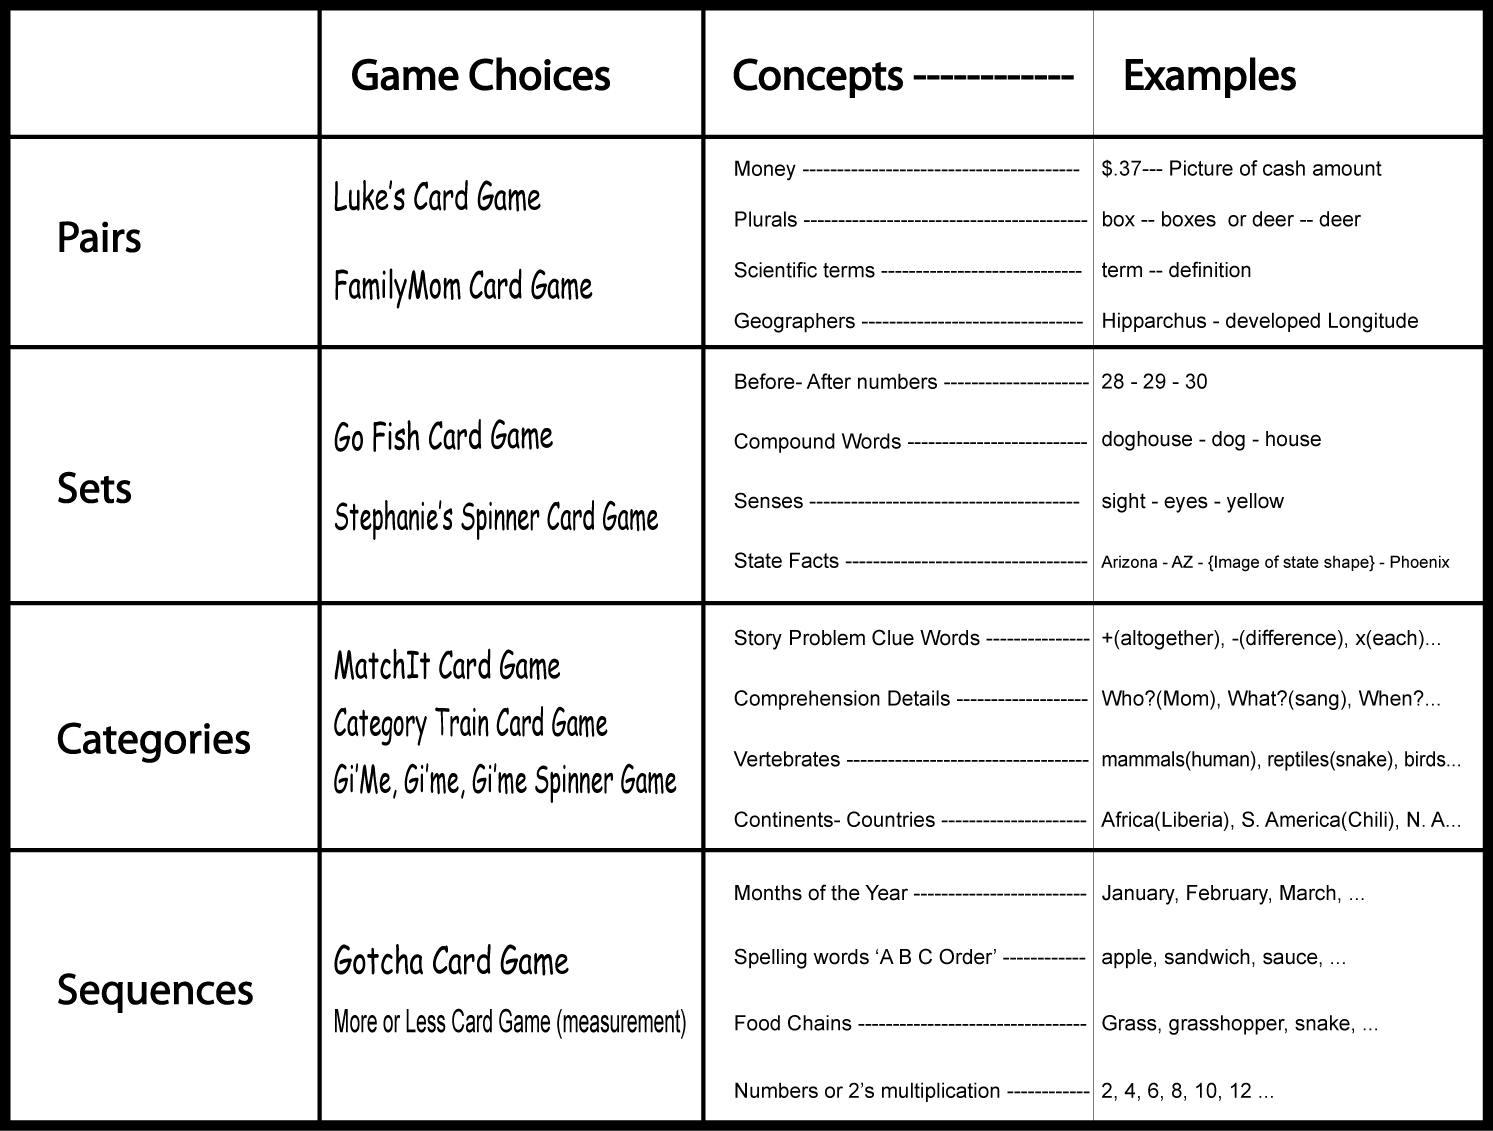 Custom Printable Games using nine different game rules. Each game prints out with the cards, rules, answer keys, tokes, spinners, whatever is required to play the specific game.